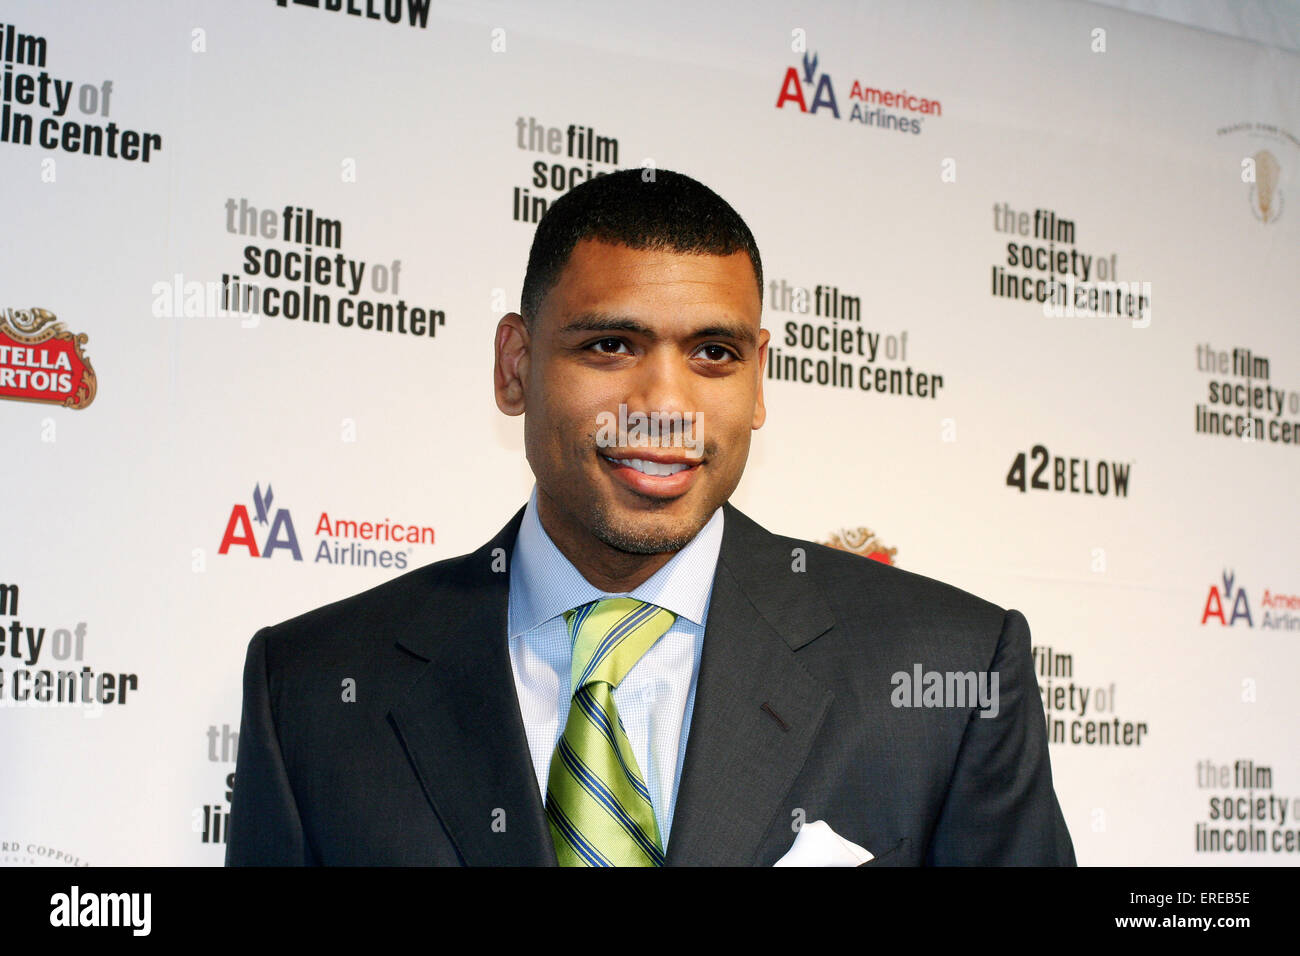 Allan Houston at the 36th Annual Society Gala Tribute honors